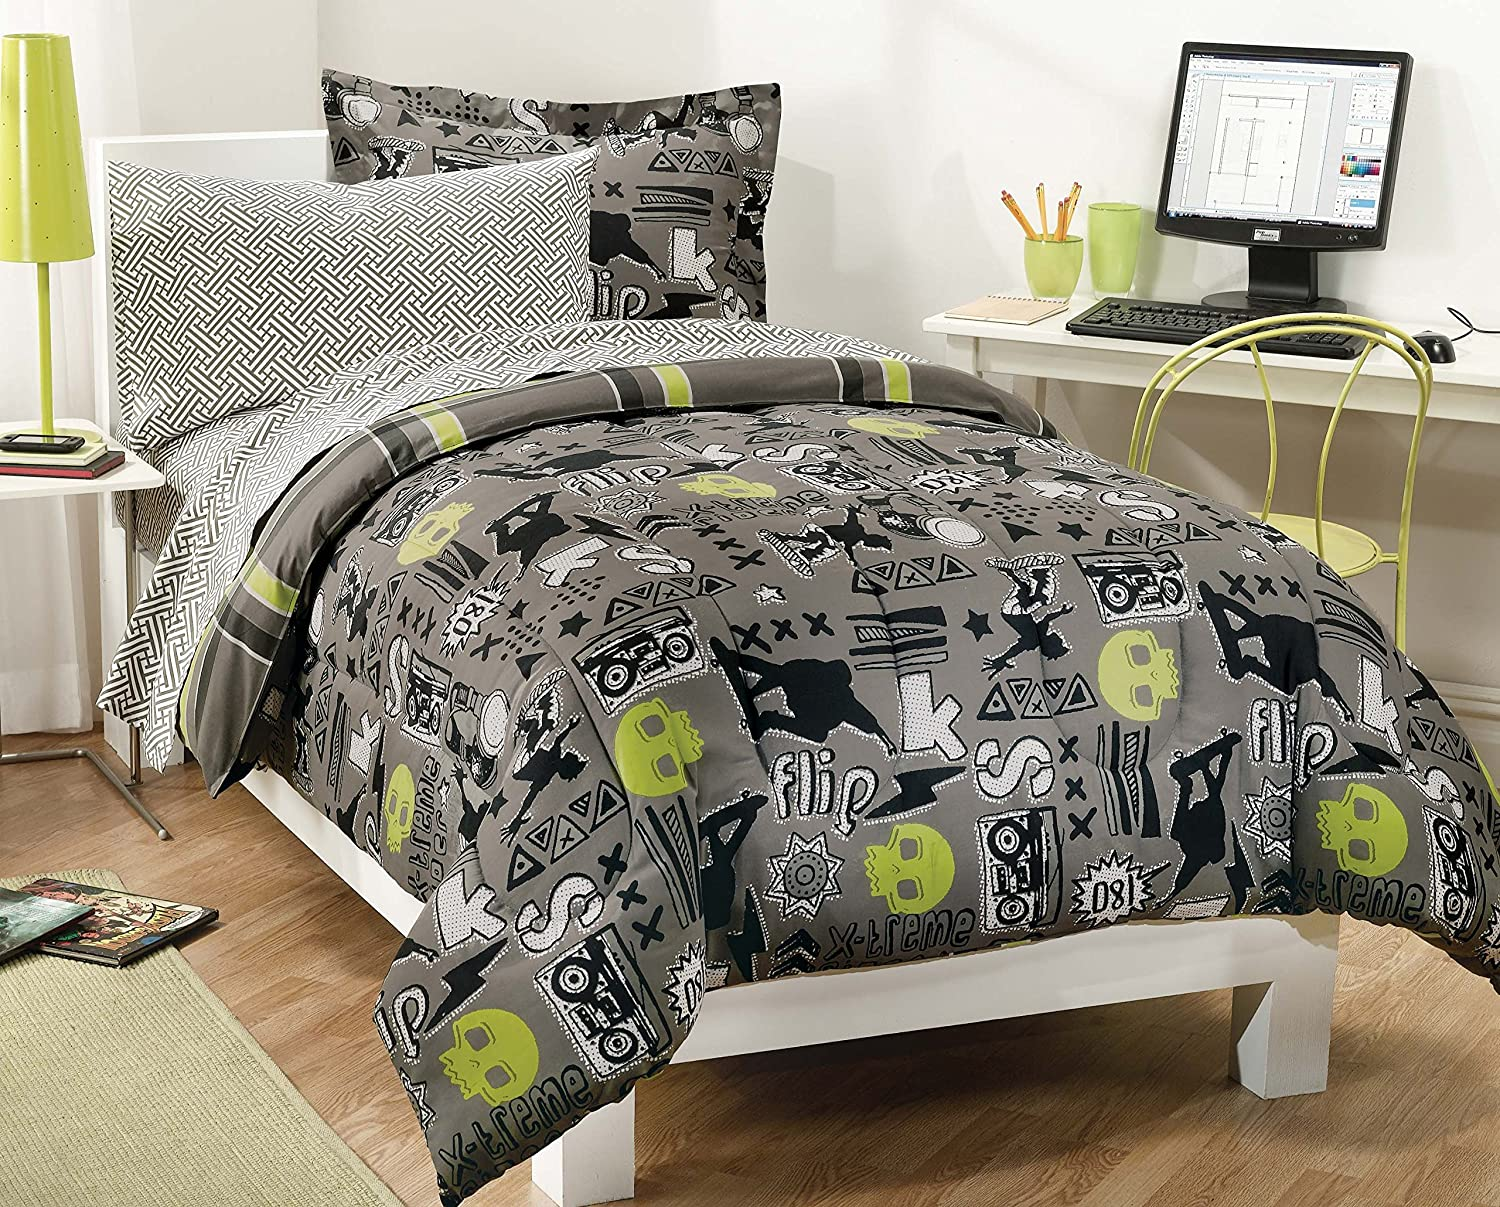 amazoncom my room extreme boys comforter set with 180tc sheets gray twin home u0026 kitchen